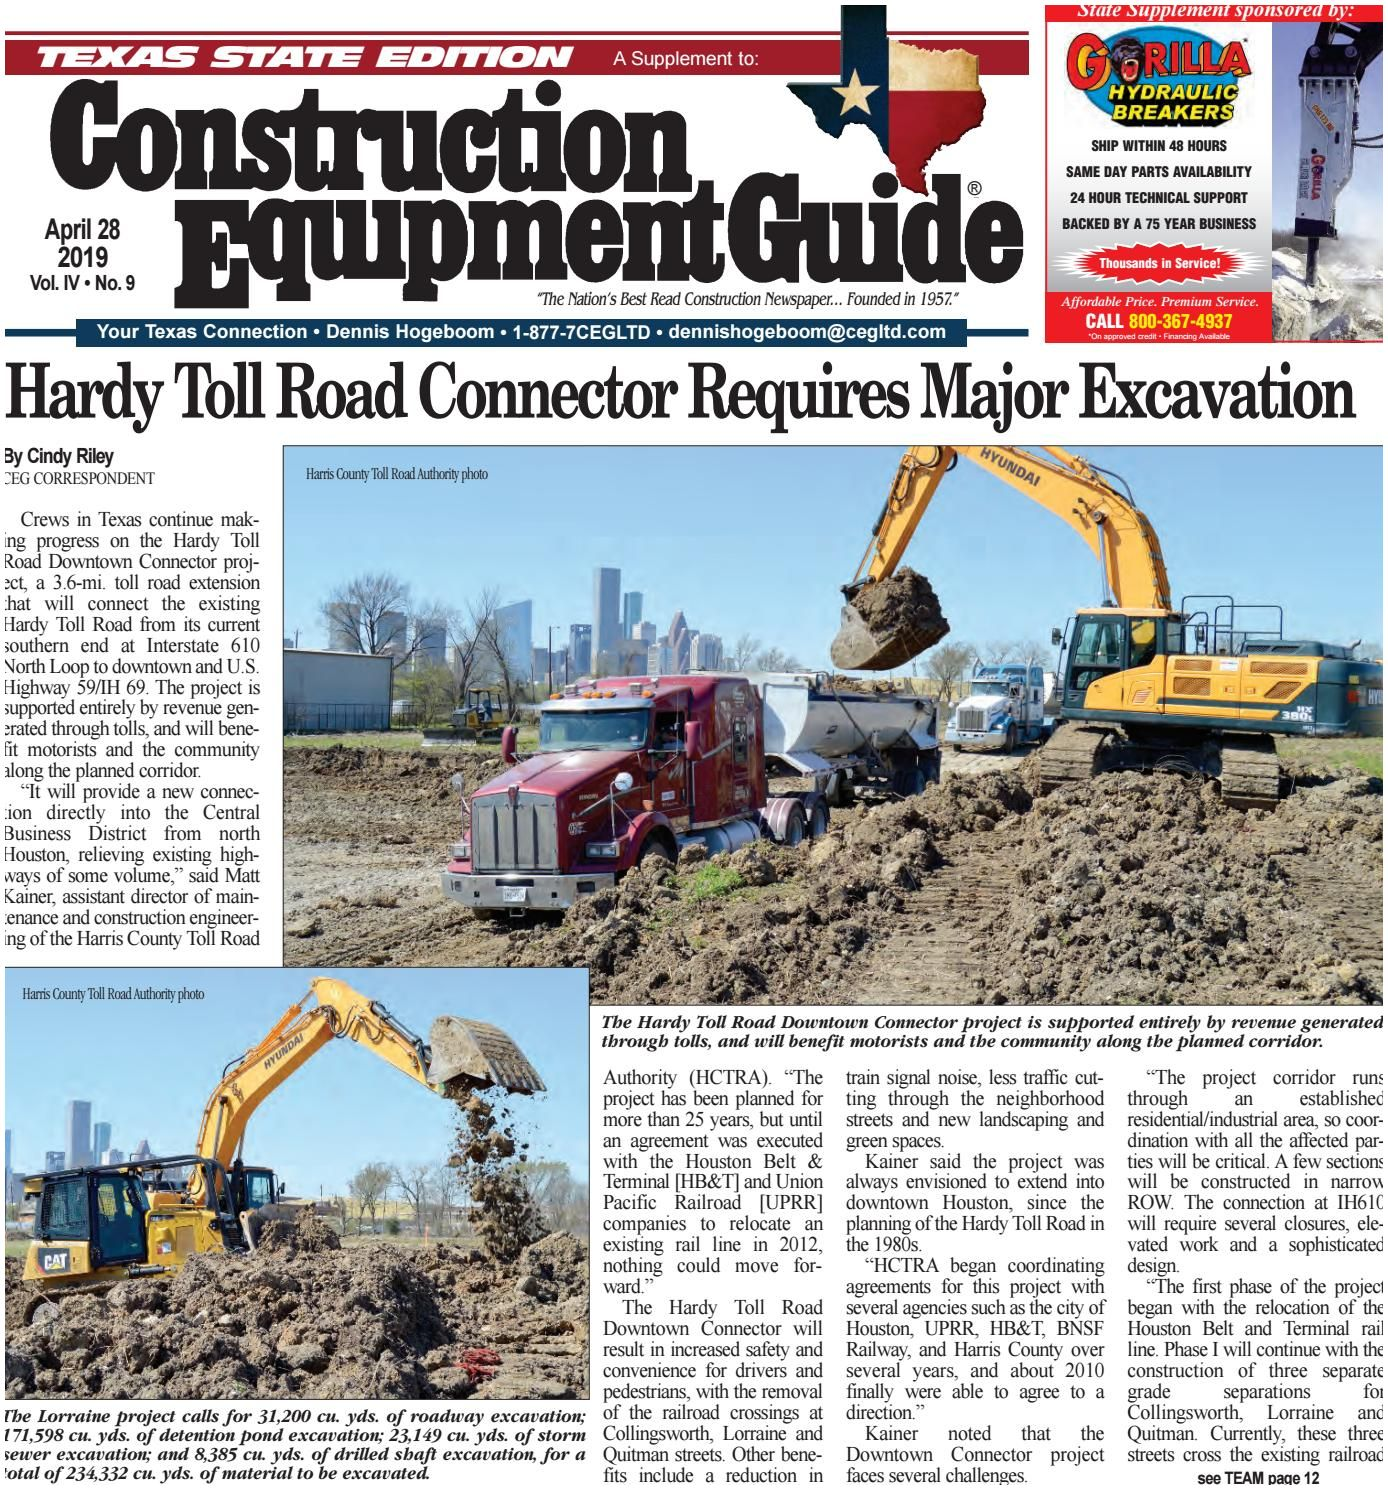 Construction Business Owner Magazine Texas 9 April 28 2019 by Construction Equipment Guide issuu